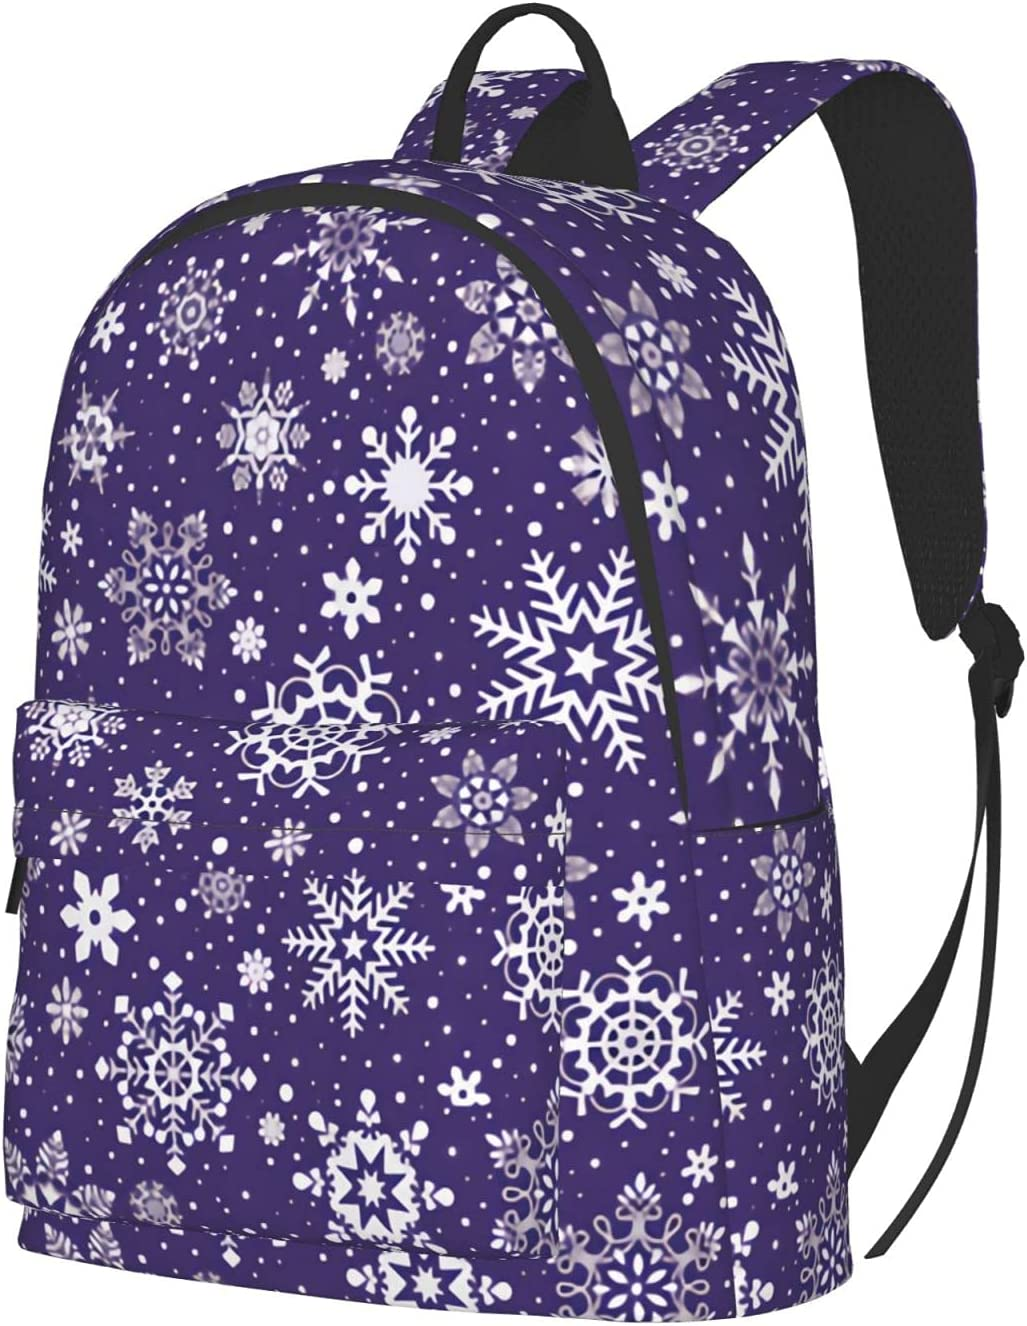 snowflakes - dark Our shop 70% OFF Outlet OFFers the best service purple Backpack Unisex Travel Laptop